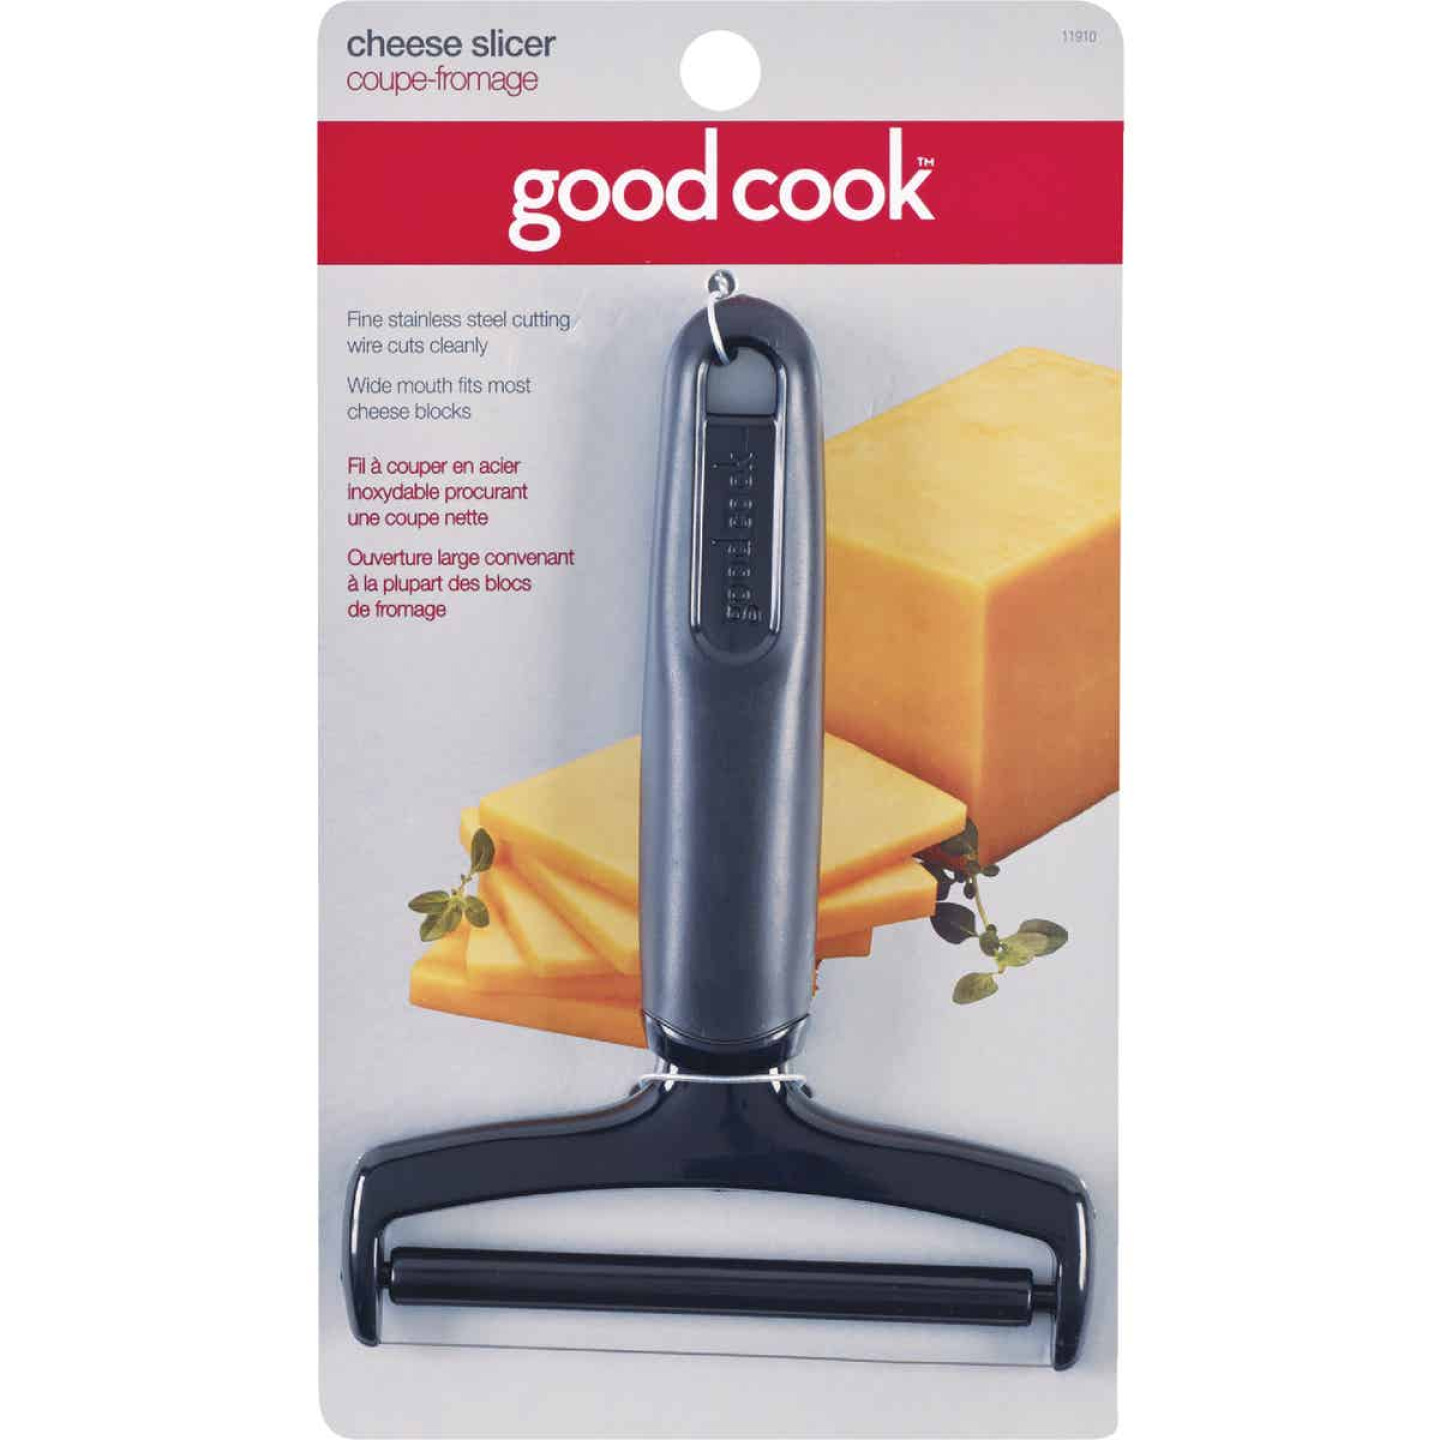 Goodcook 5 In. W. Plastic Cheese Slicer Image 1